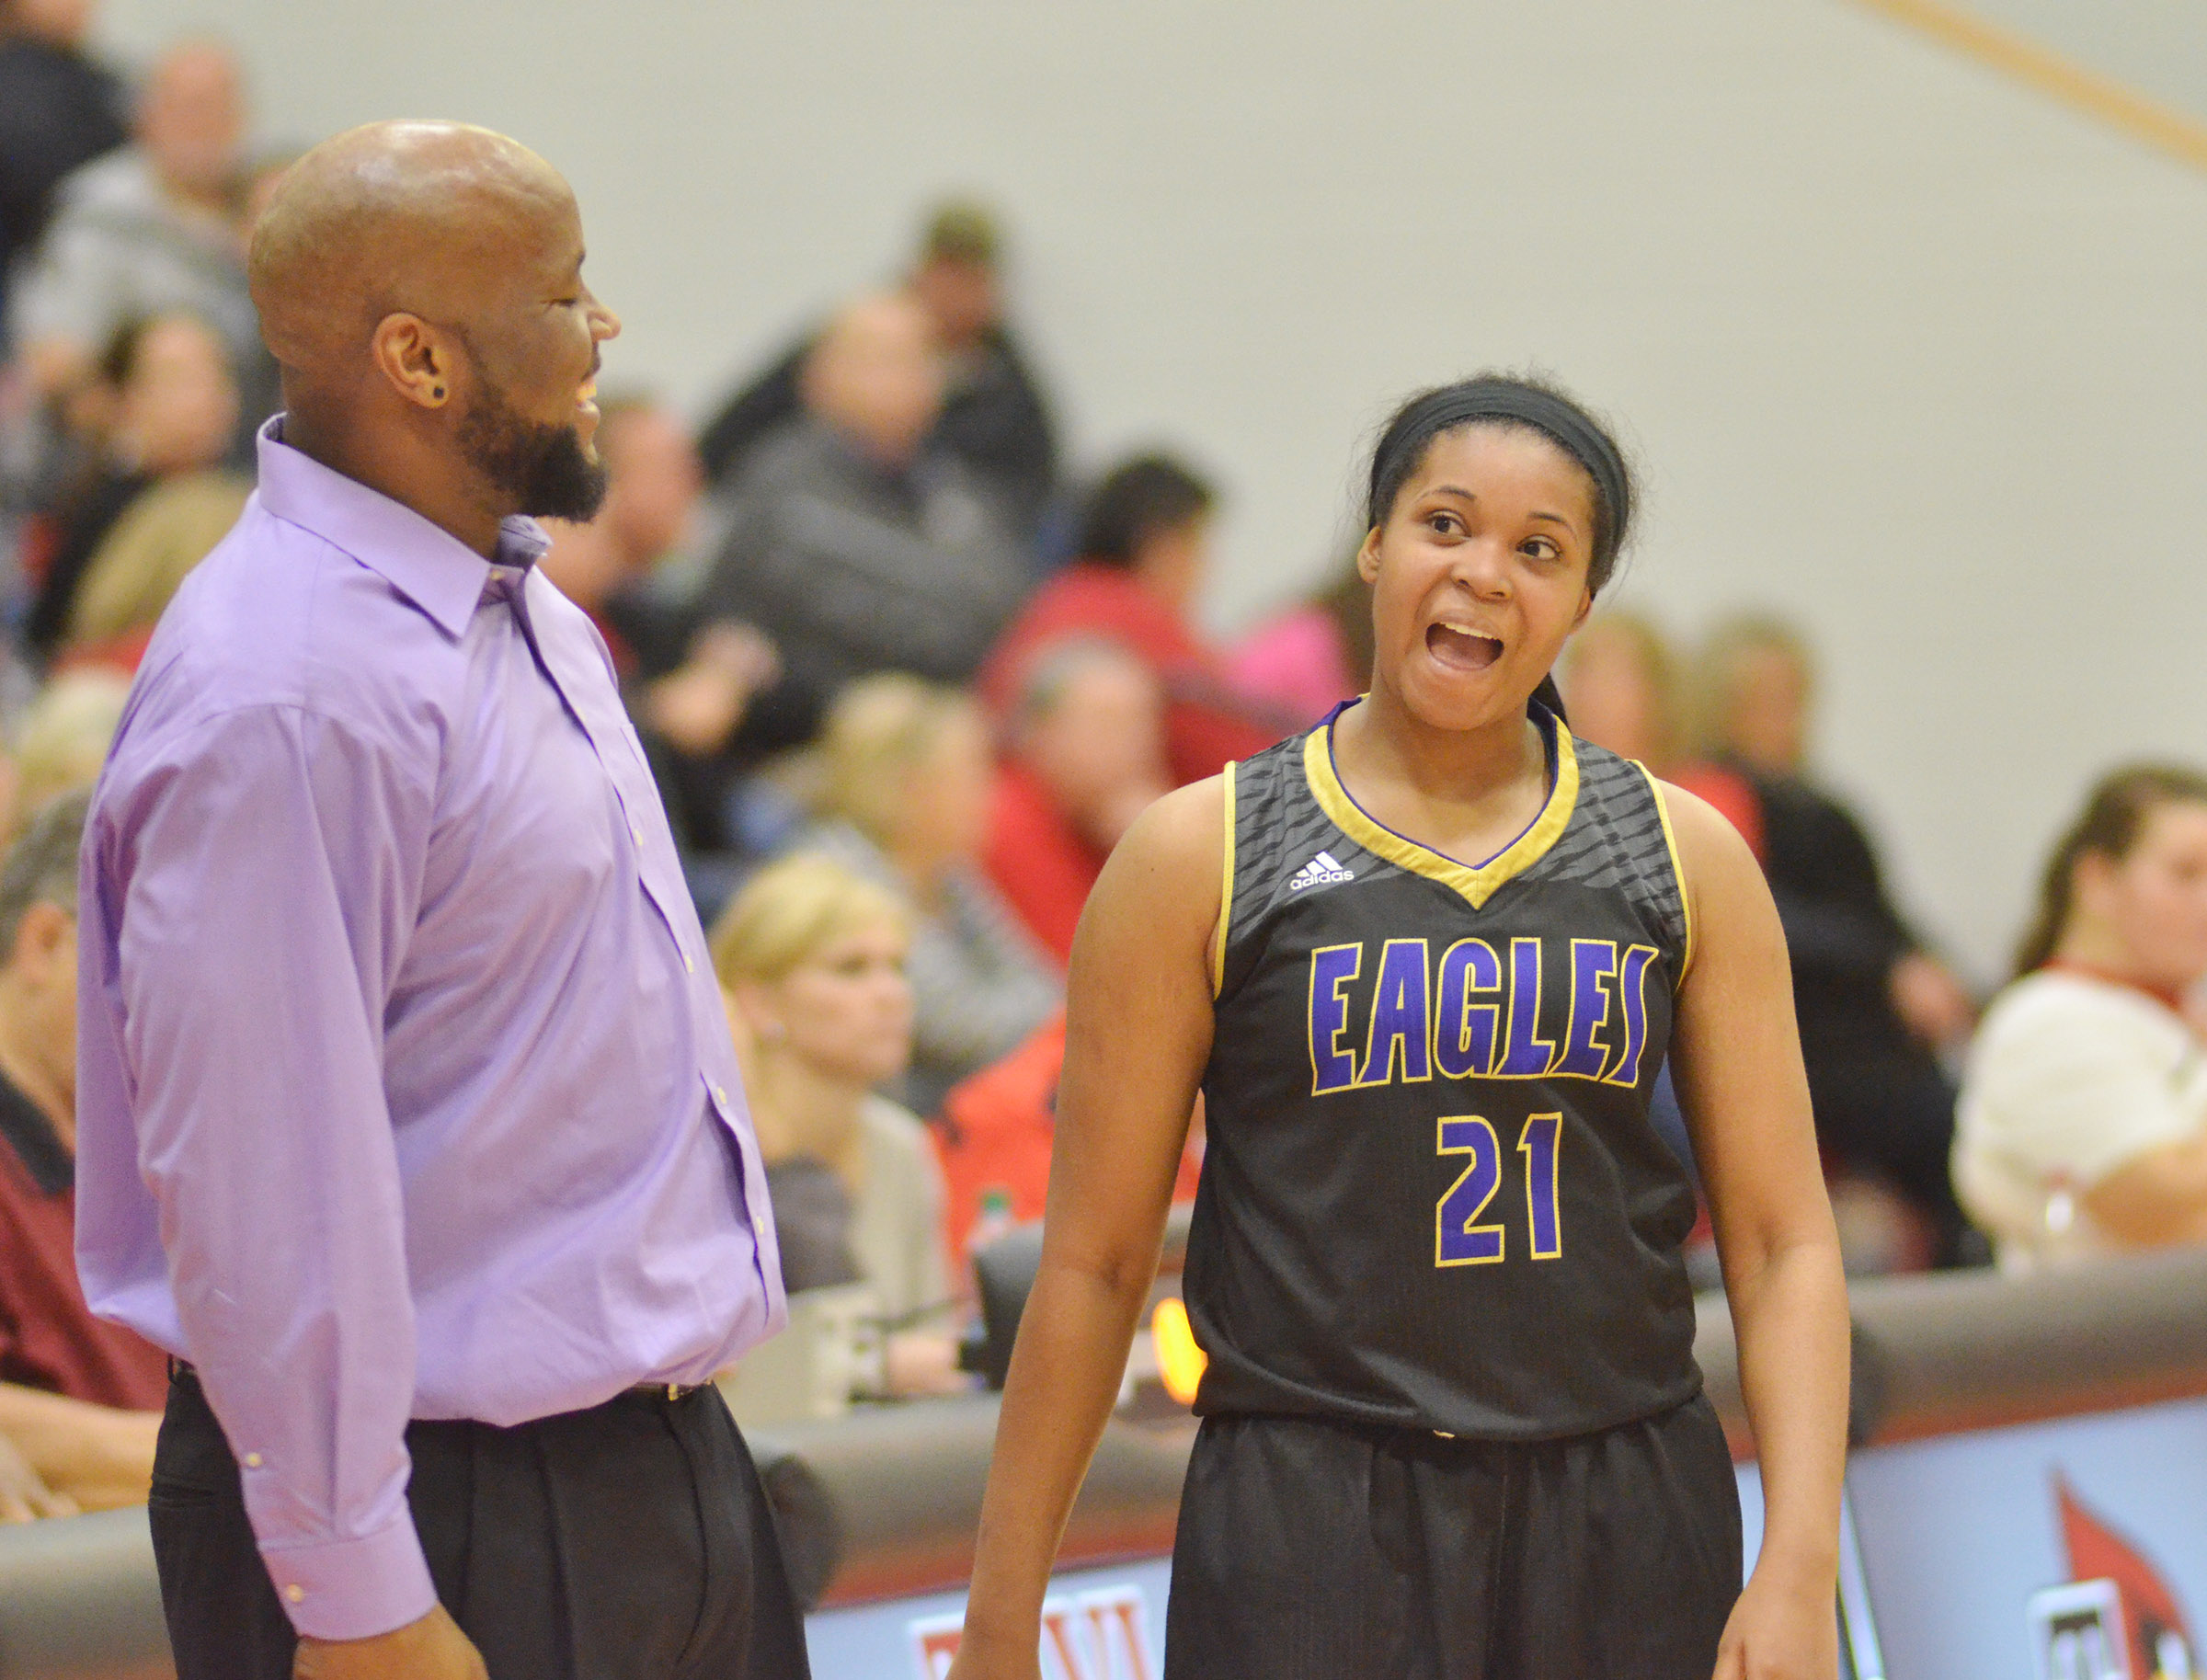 CHS girls' head basketball coach Anthony Epps and senior Vonnea Smith cheer as the Lady Eagles defeat Taylor County.